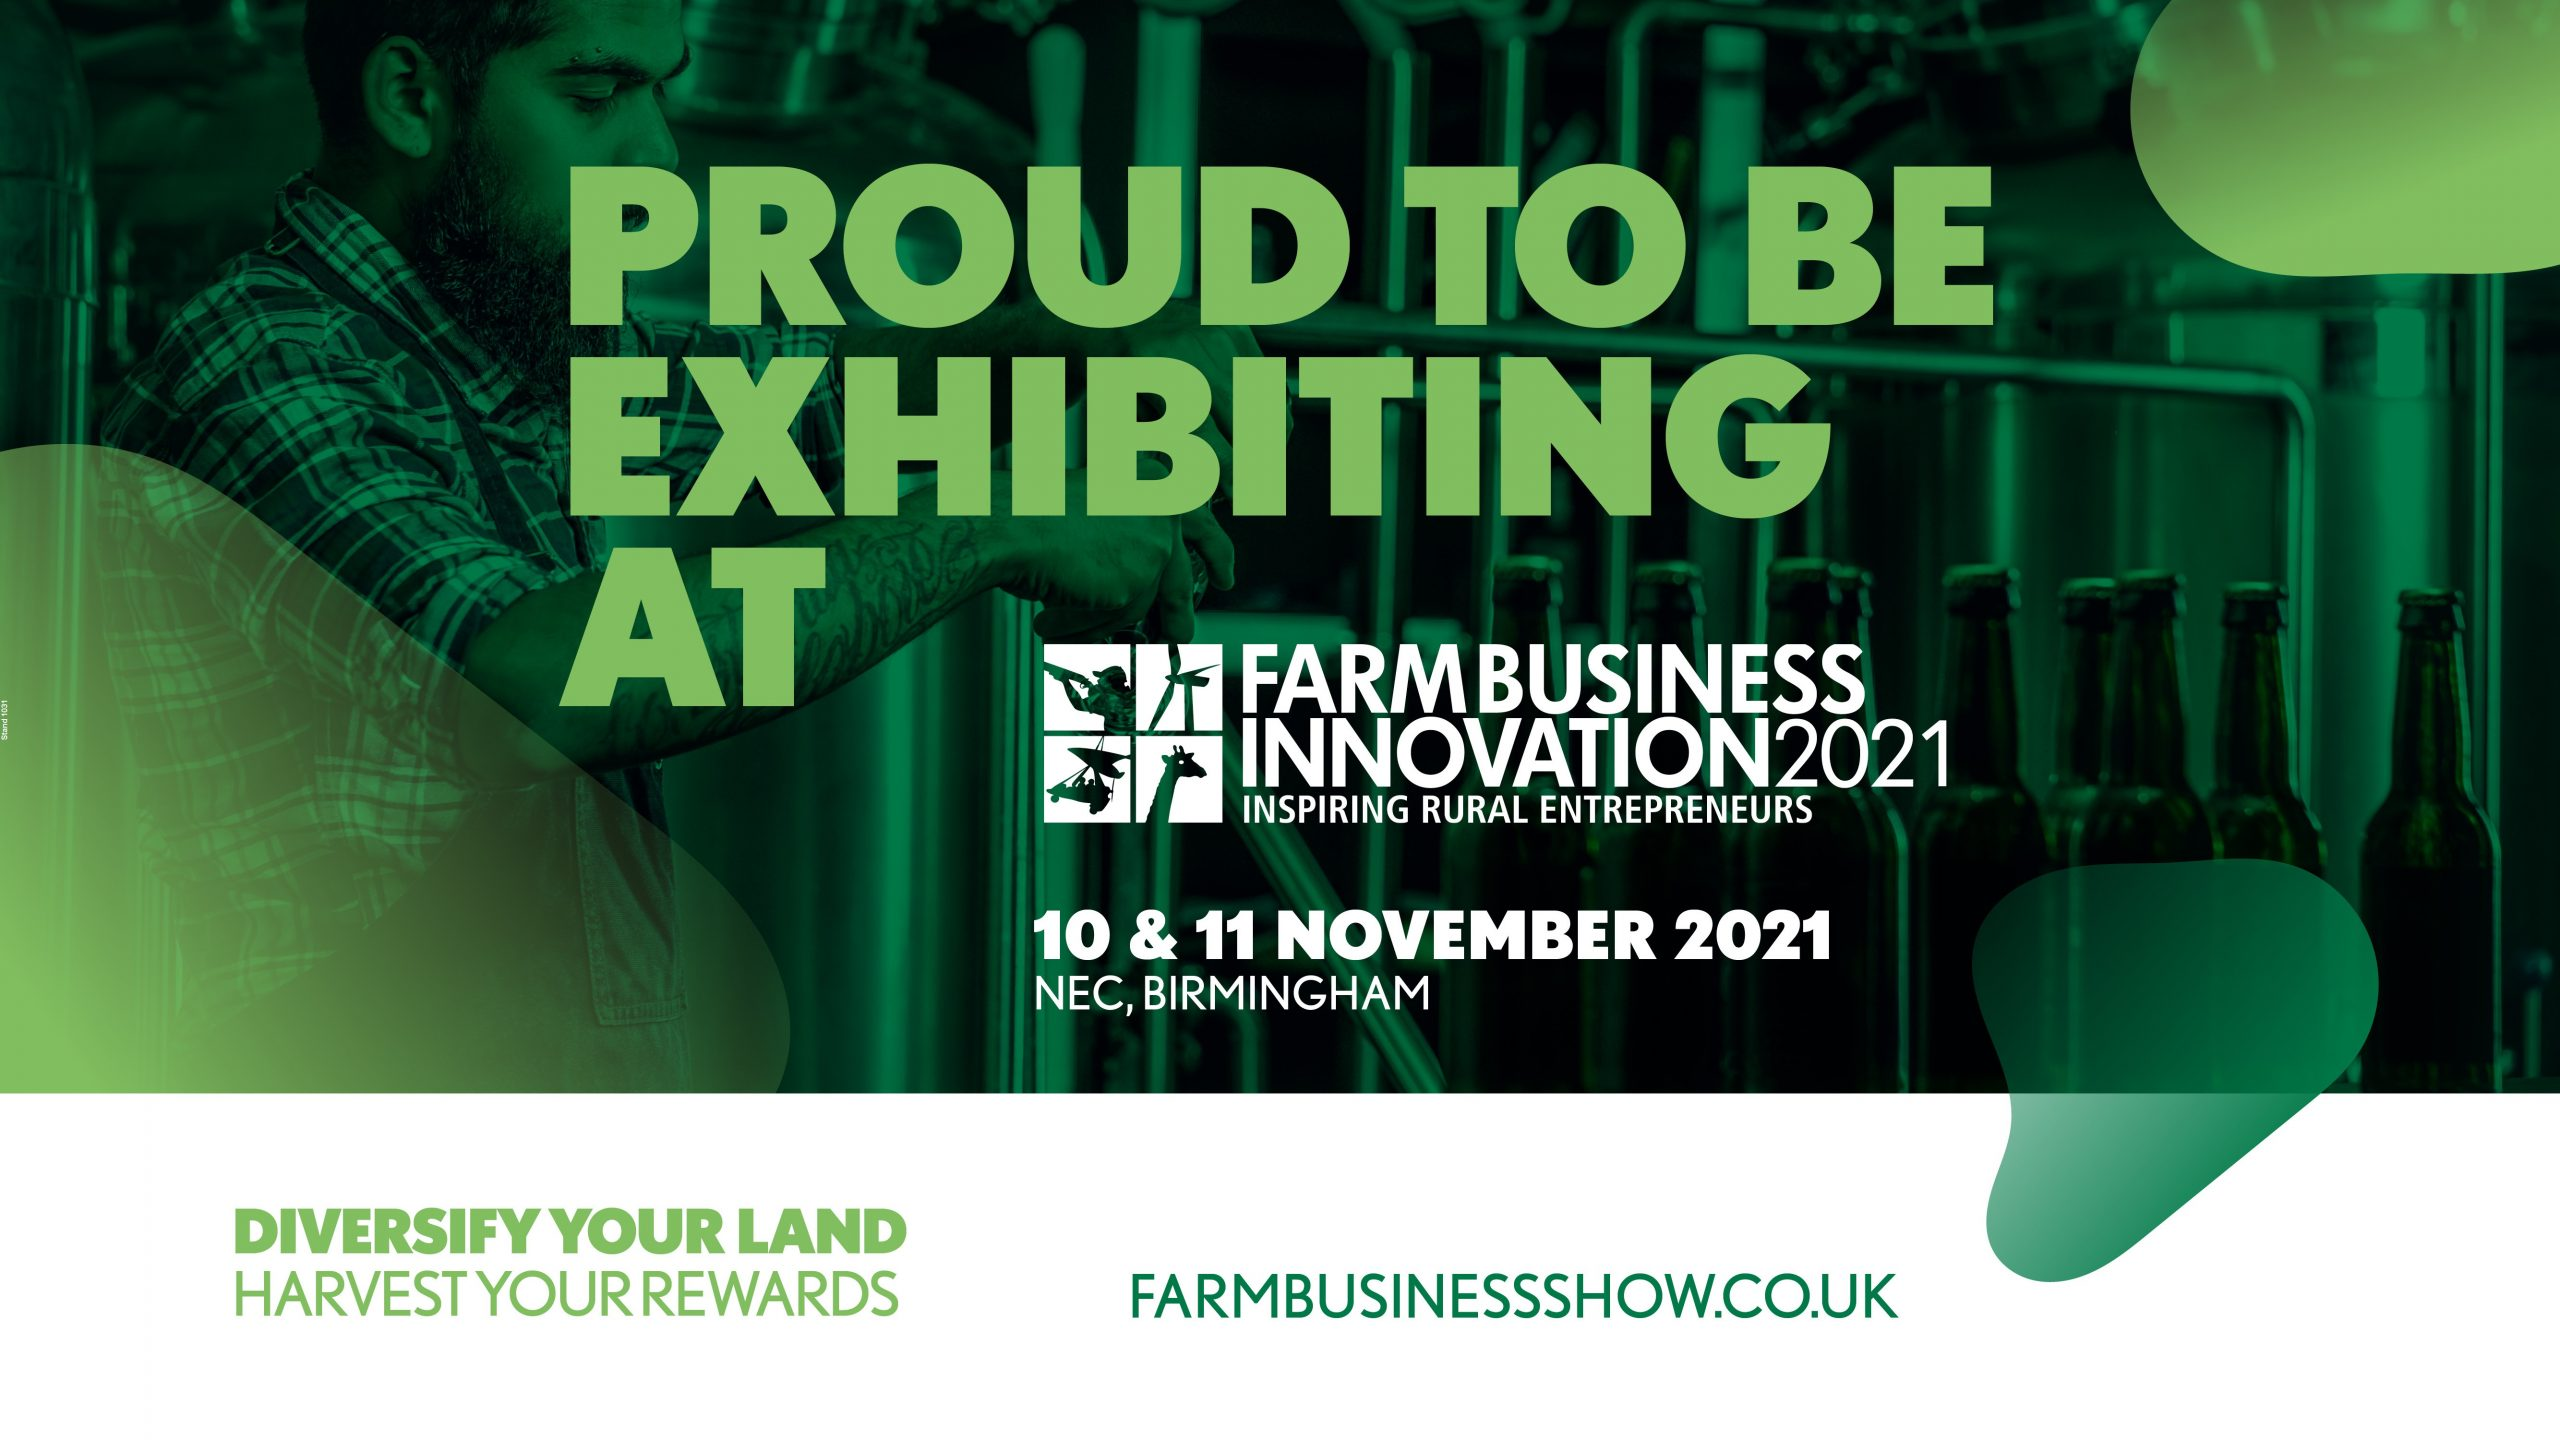 www.farmbusinessshow.co.uk_banners_4365_59368_banner_9995x9995